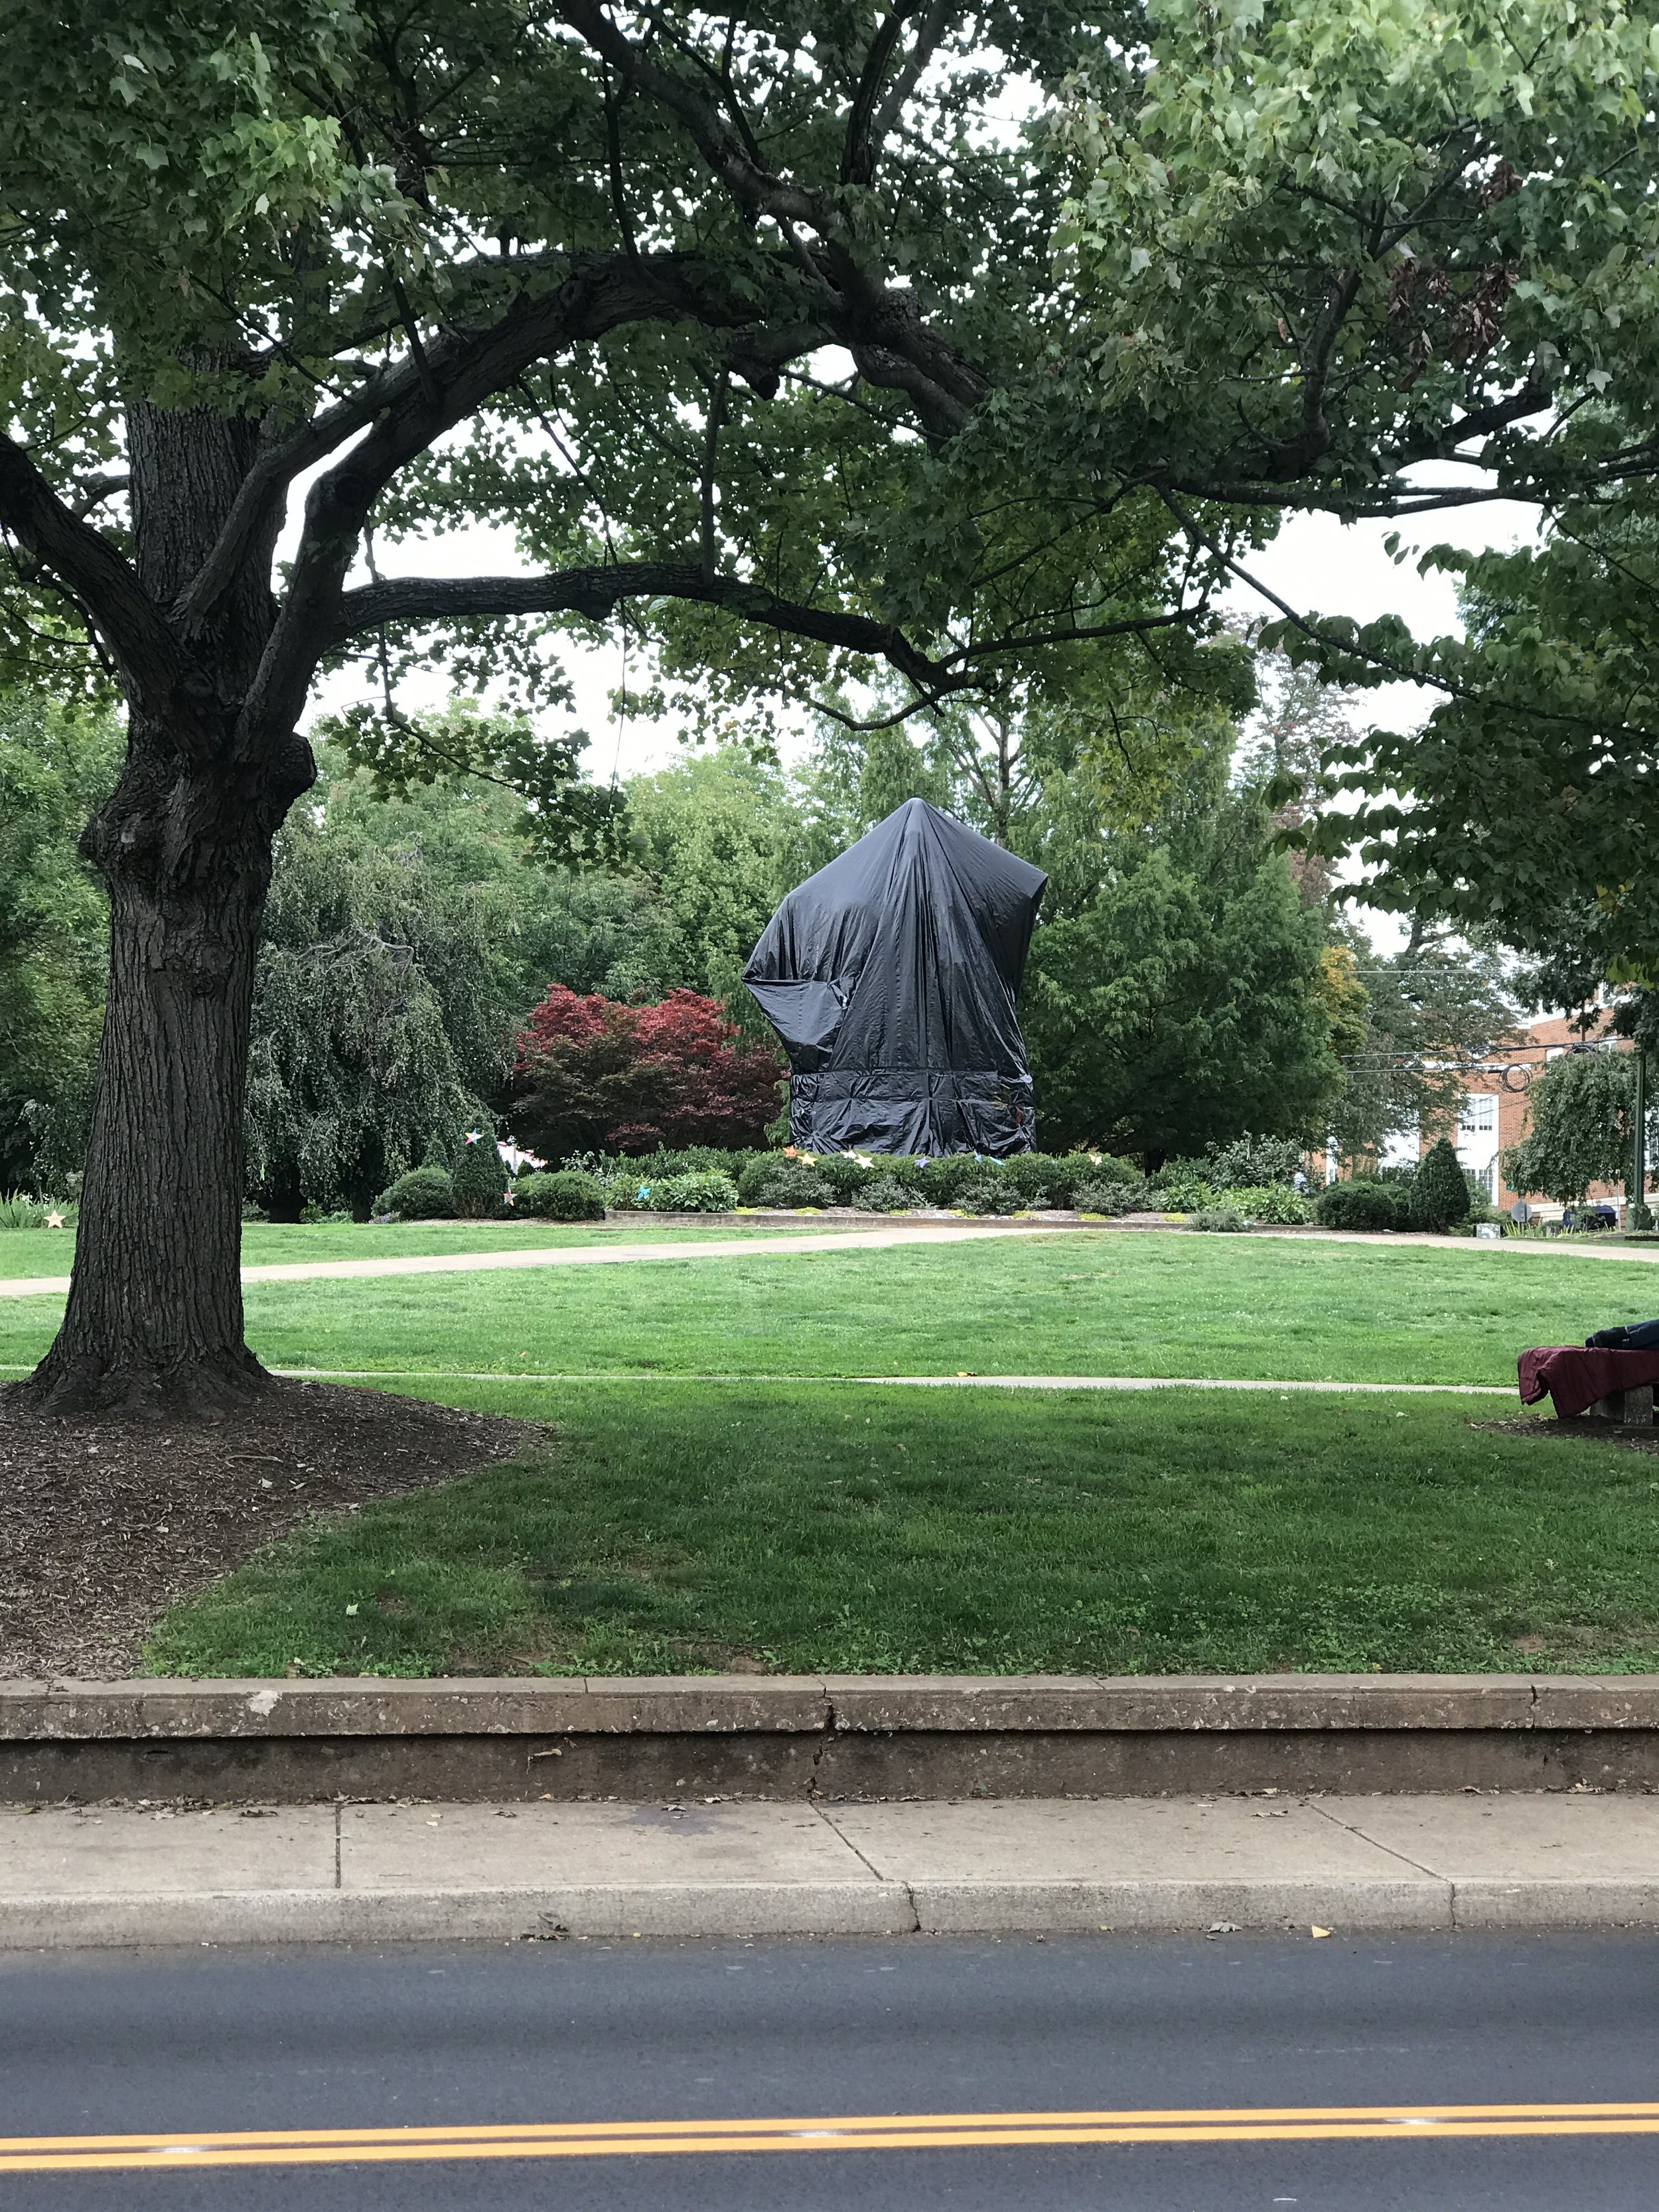 A black tarp shrouds the Lee statue in Emancipation Park. Photo courtesy Law Weekly.